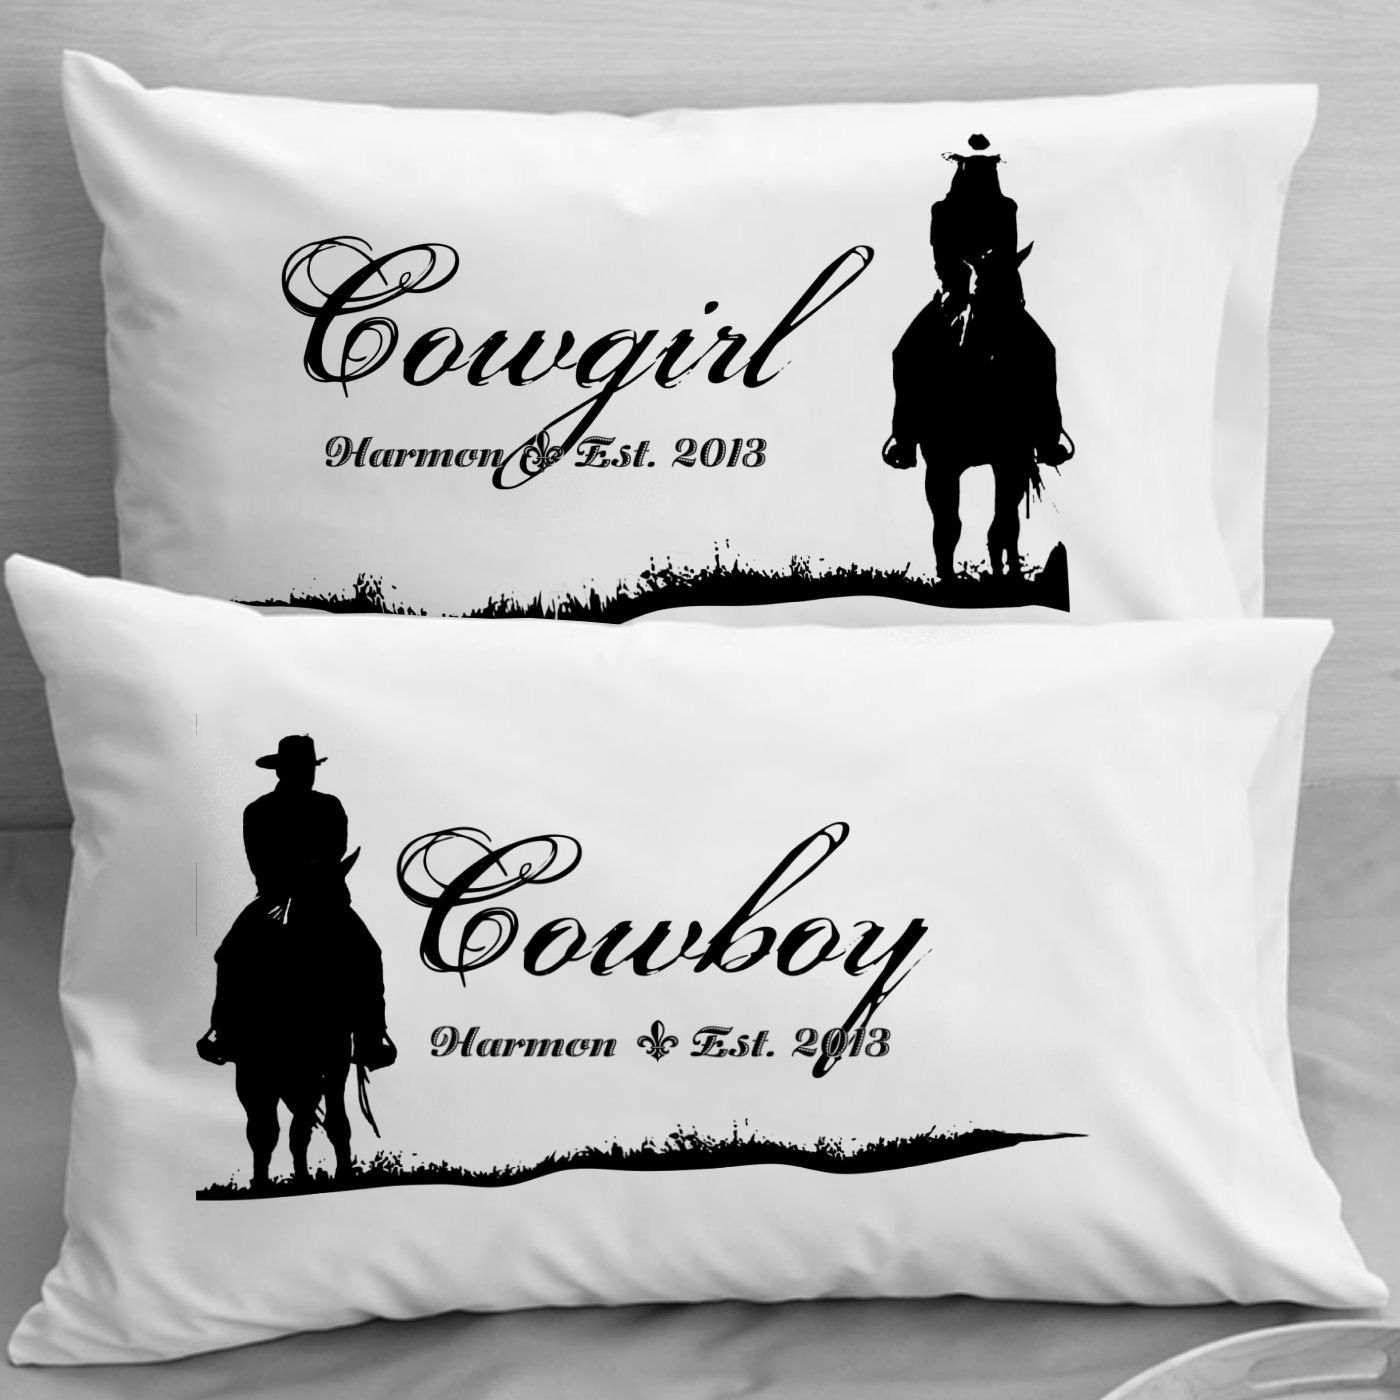 Couples Pillow Cases - Personalized - Cowboy Cowgirl Wife Husband ...